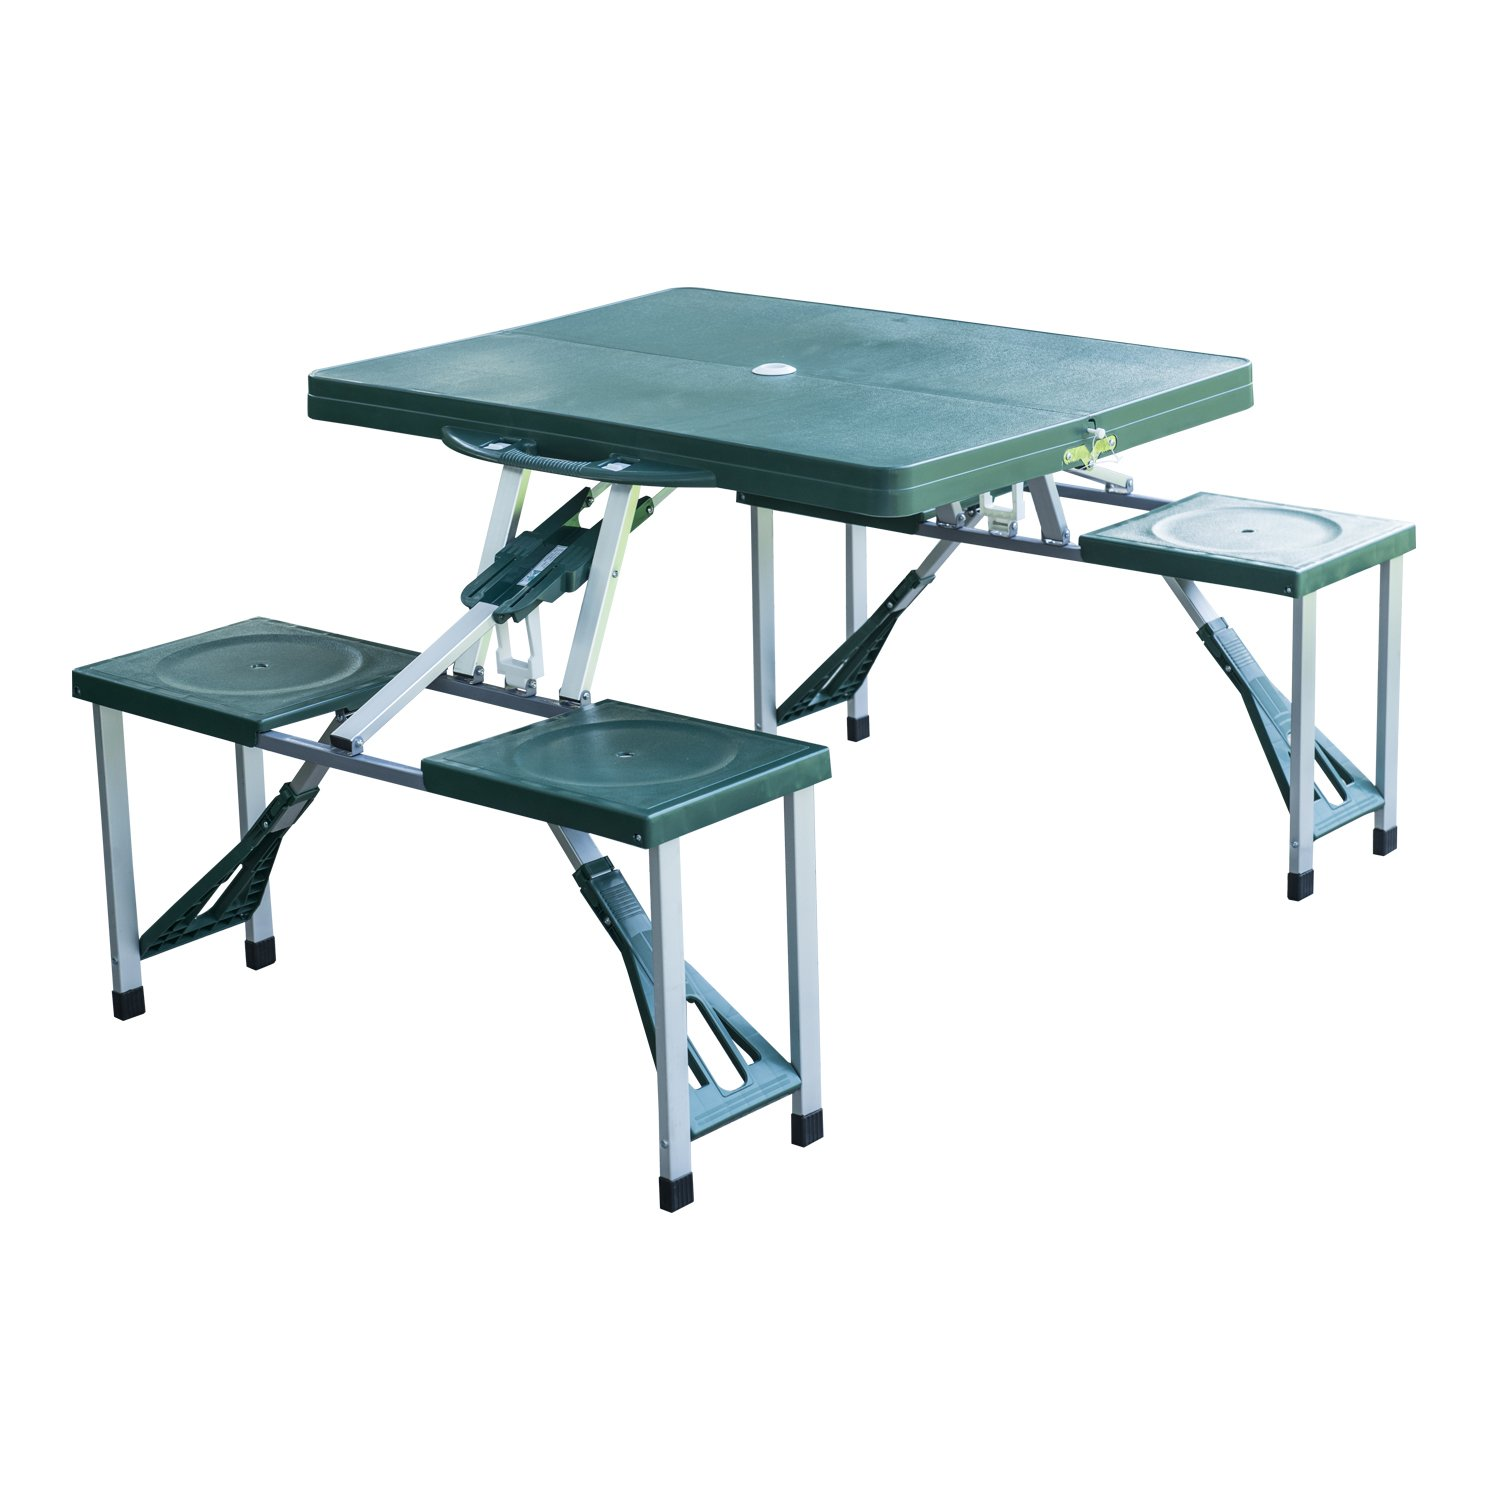 Folding Camping Picnic Table with Stools Amazon Garden